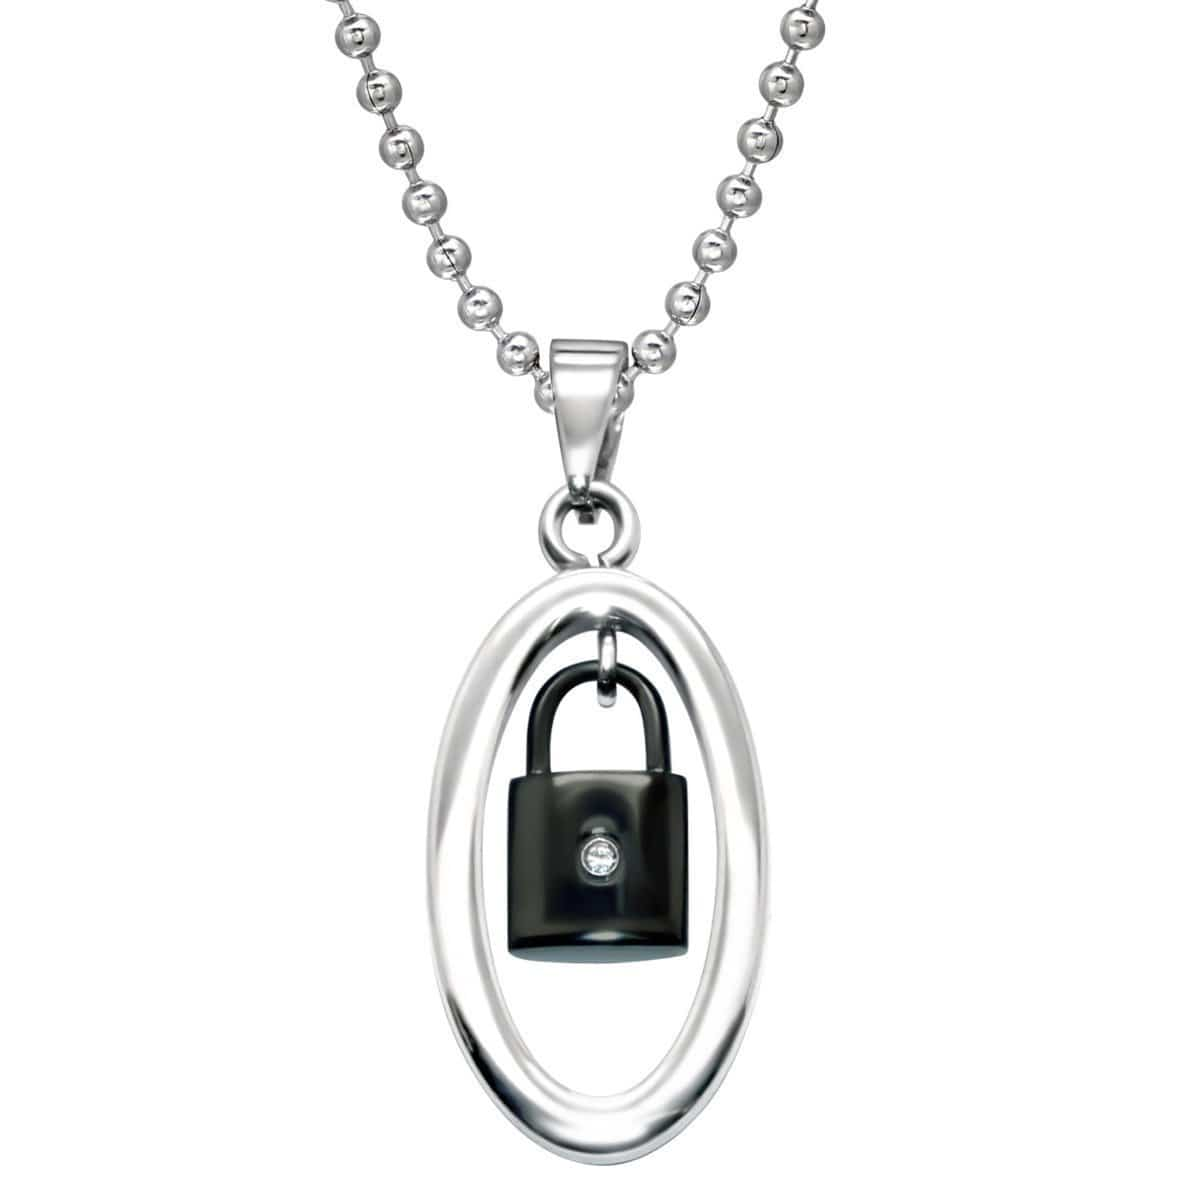 Stainless Steel CZ Lock Pendant Necklace